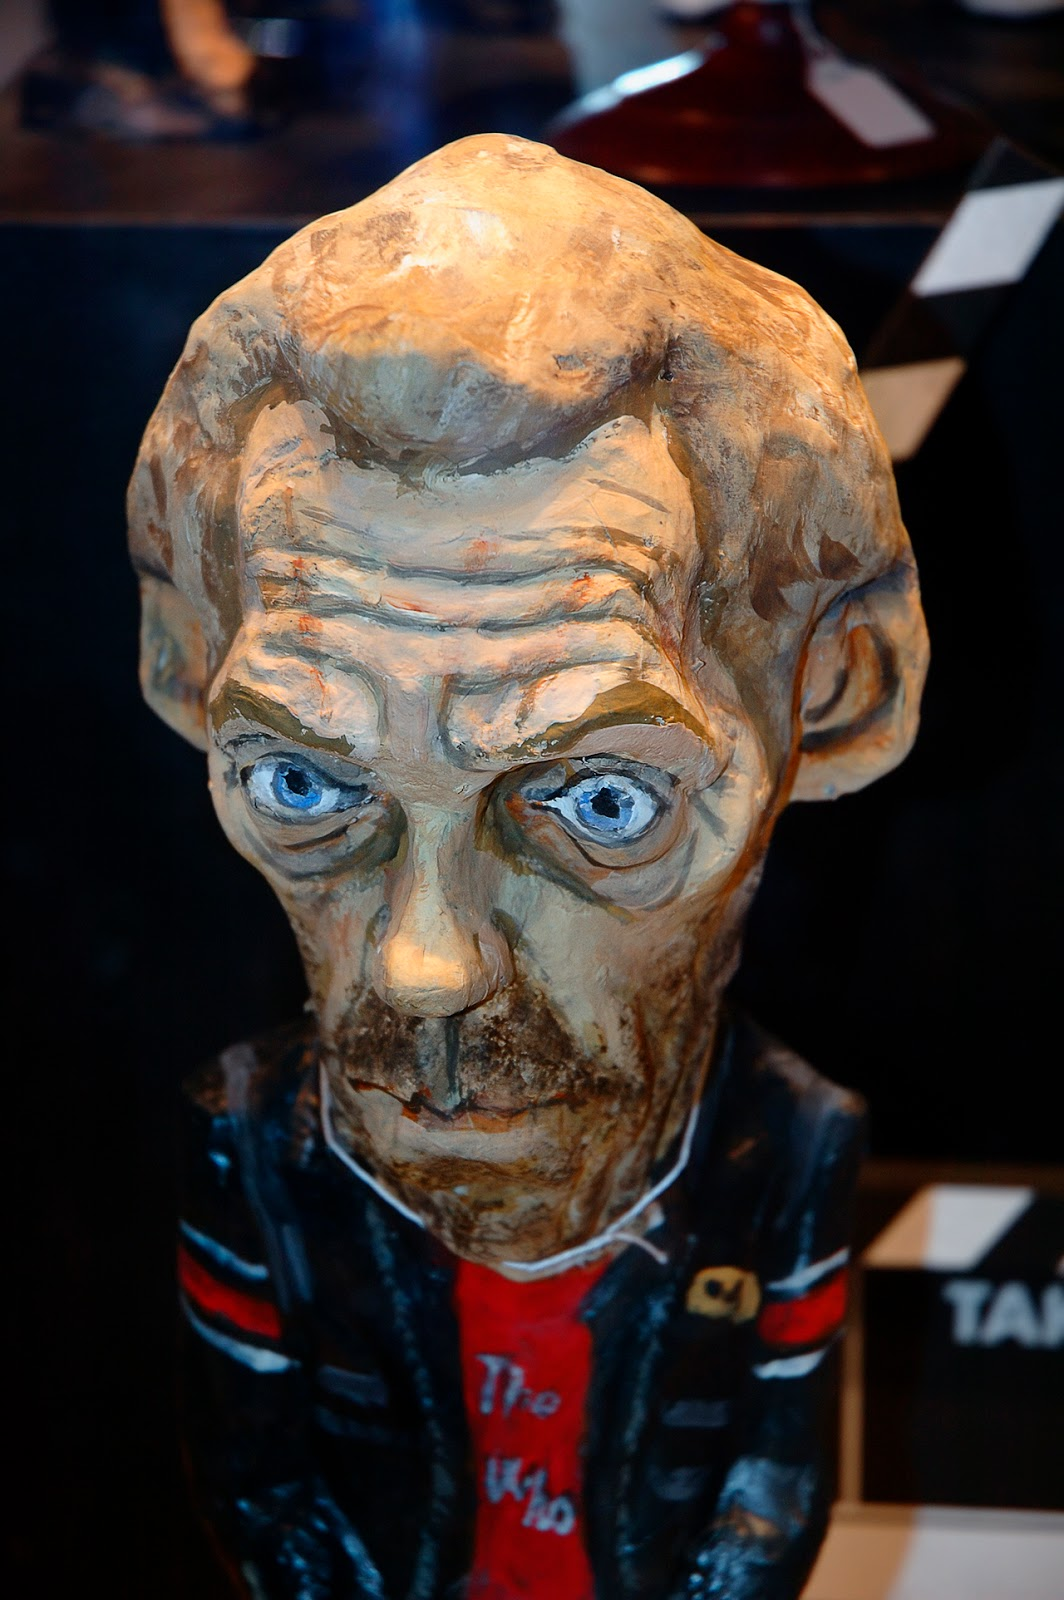 Dr. House or Hugh Laurie in Papier Mache at Barcelona Store